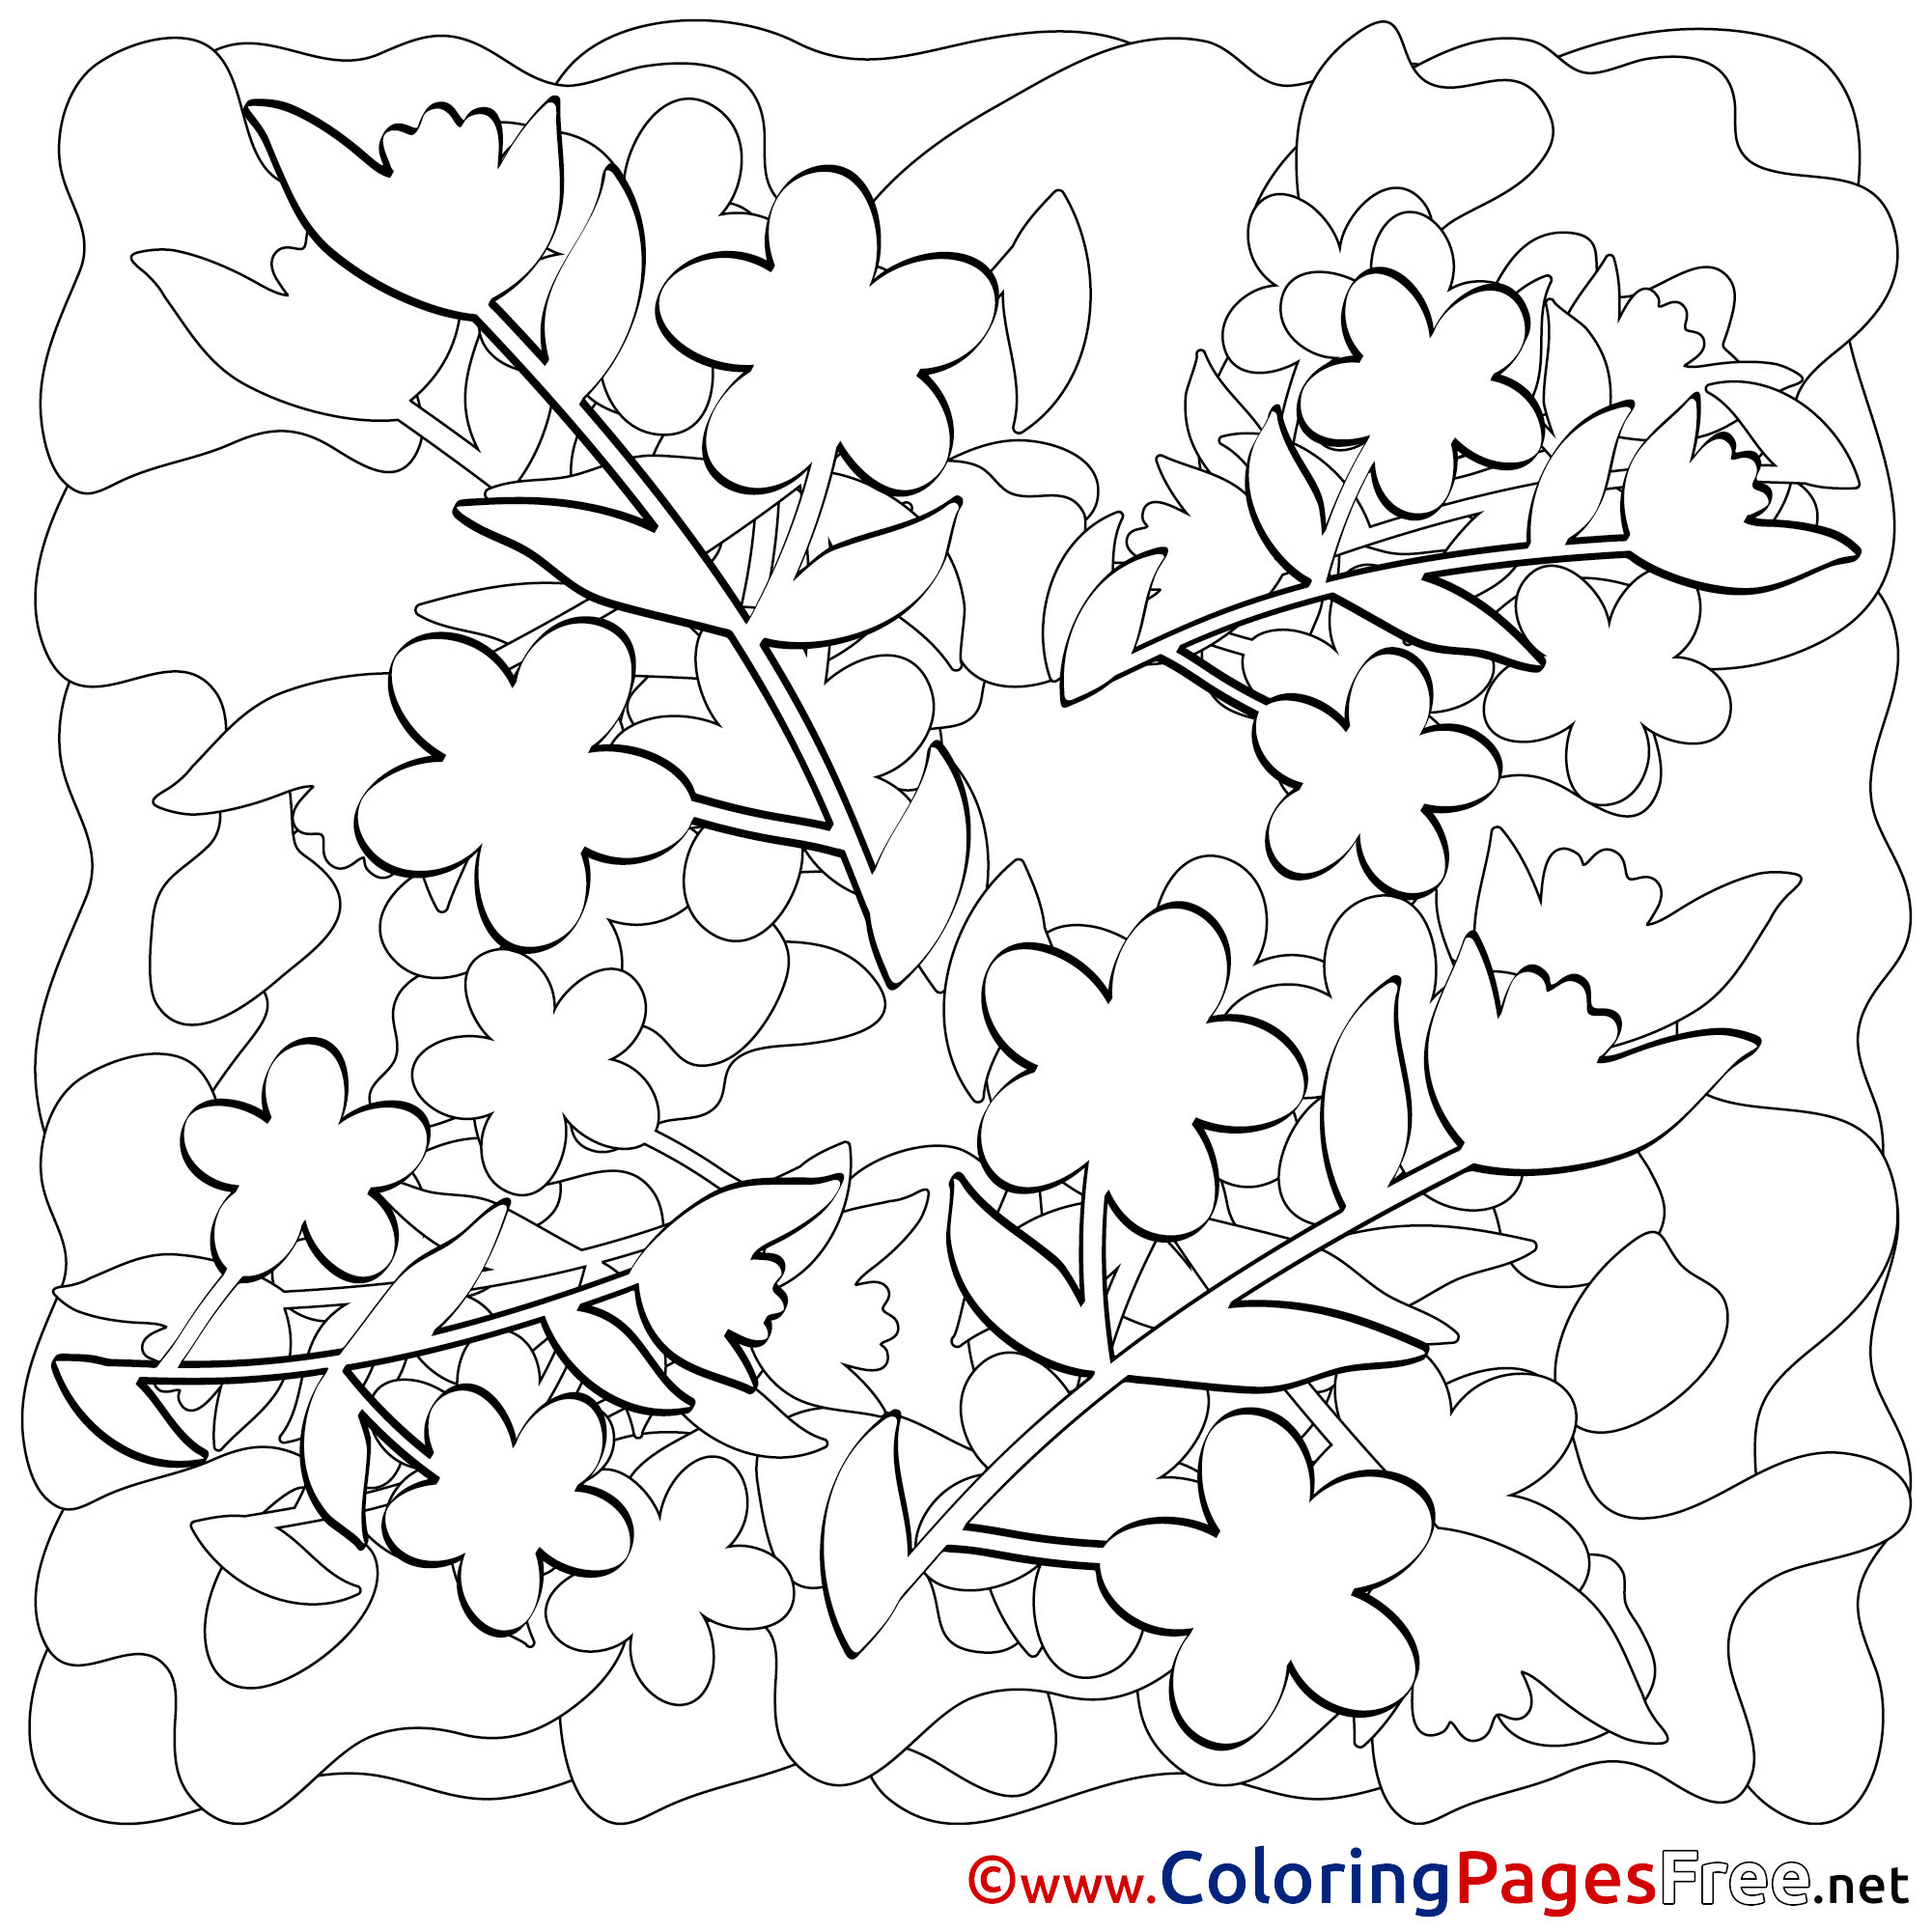 Spring Coloring Pages - Best Coloring Pages For Kids | 2001x2001